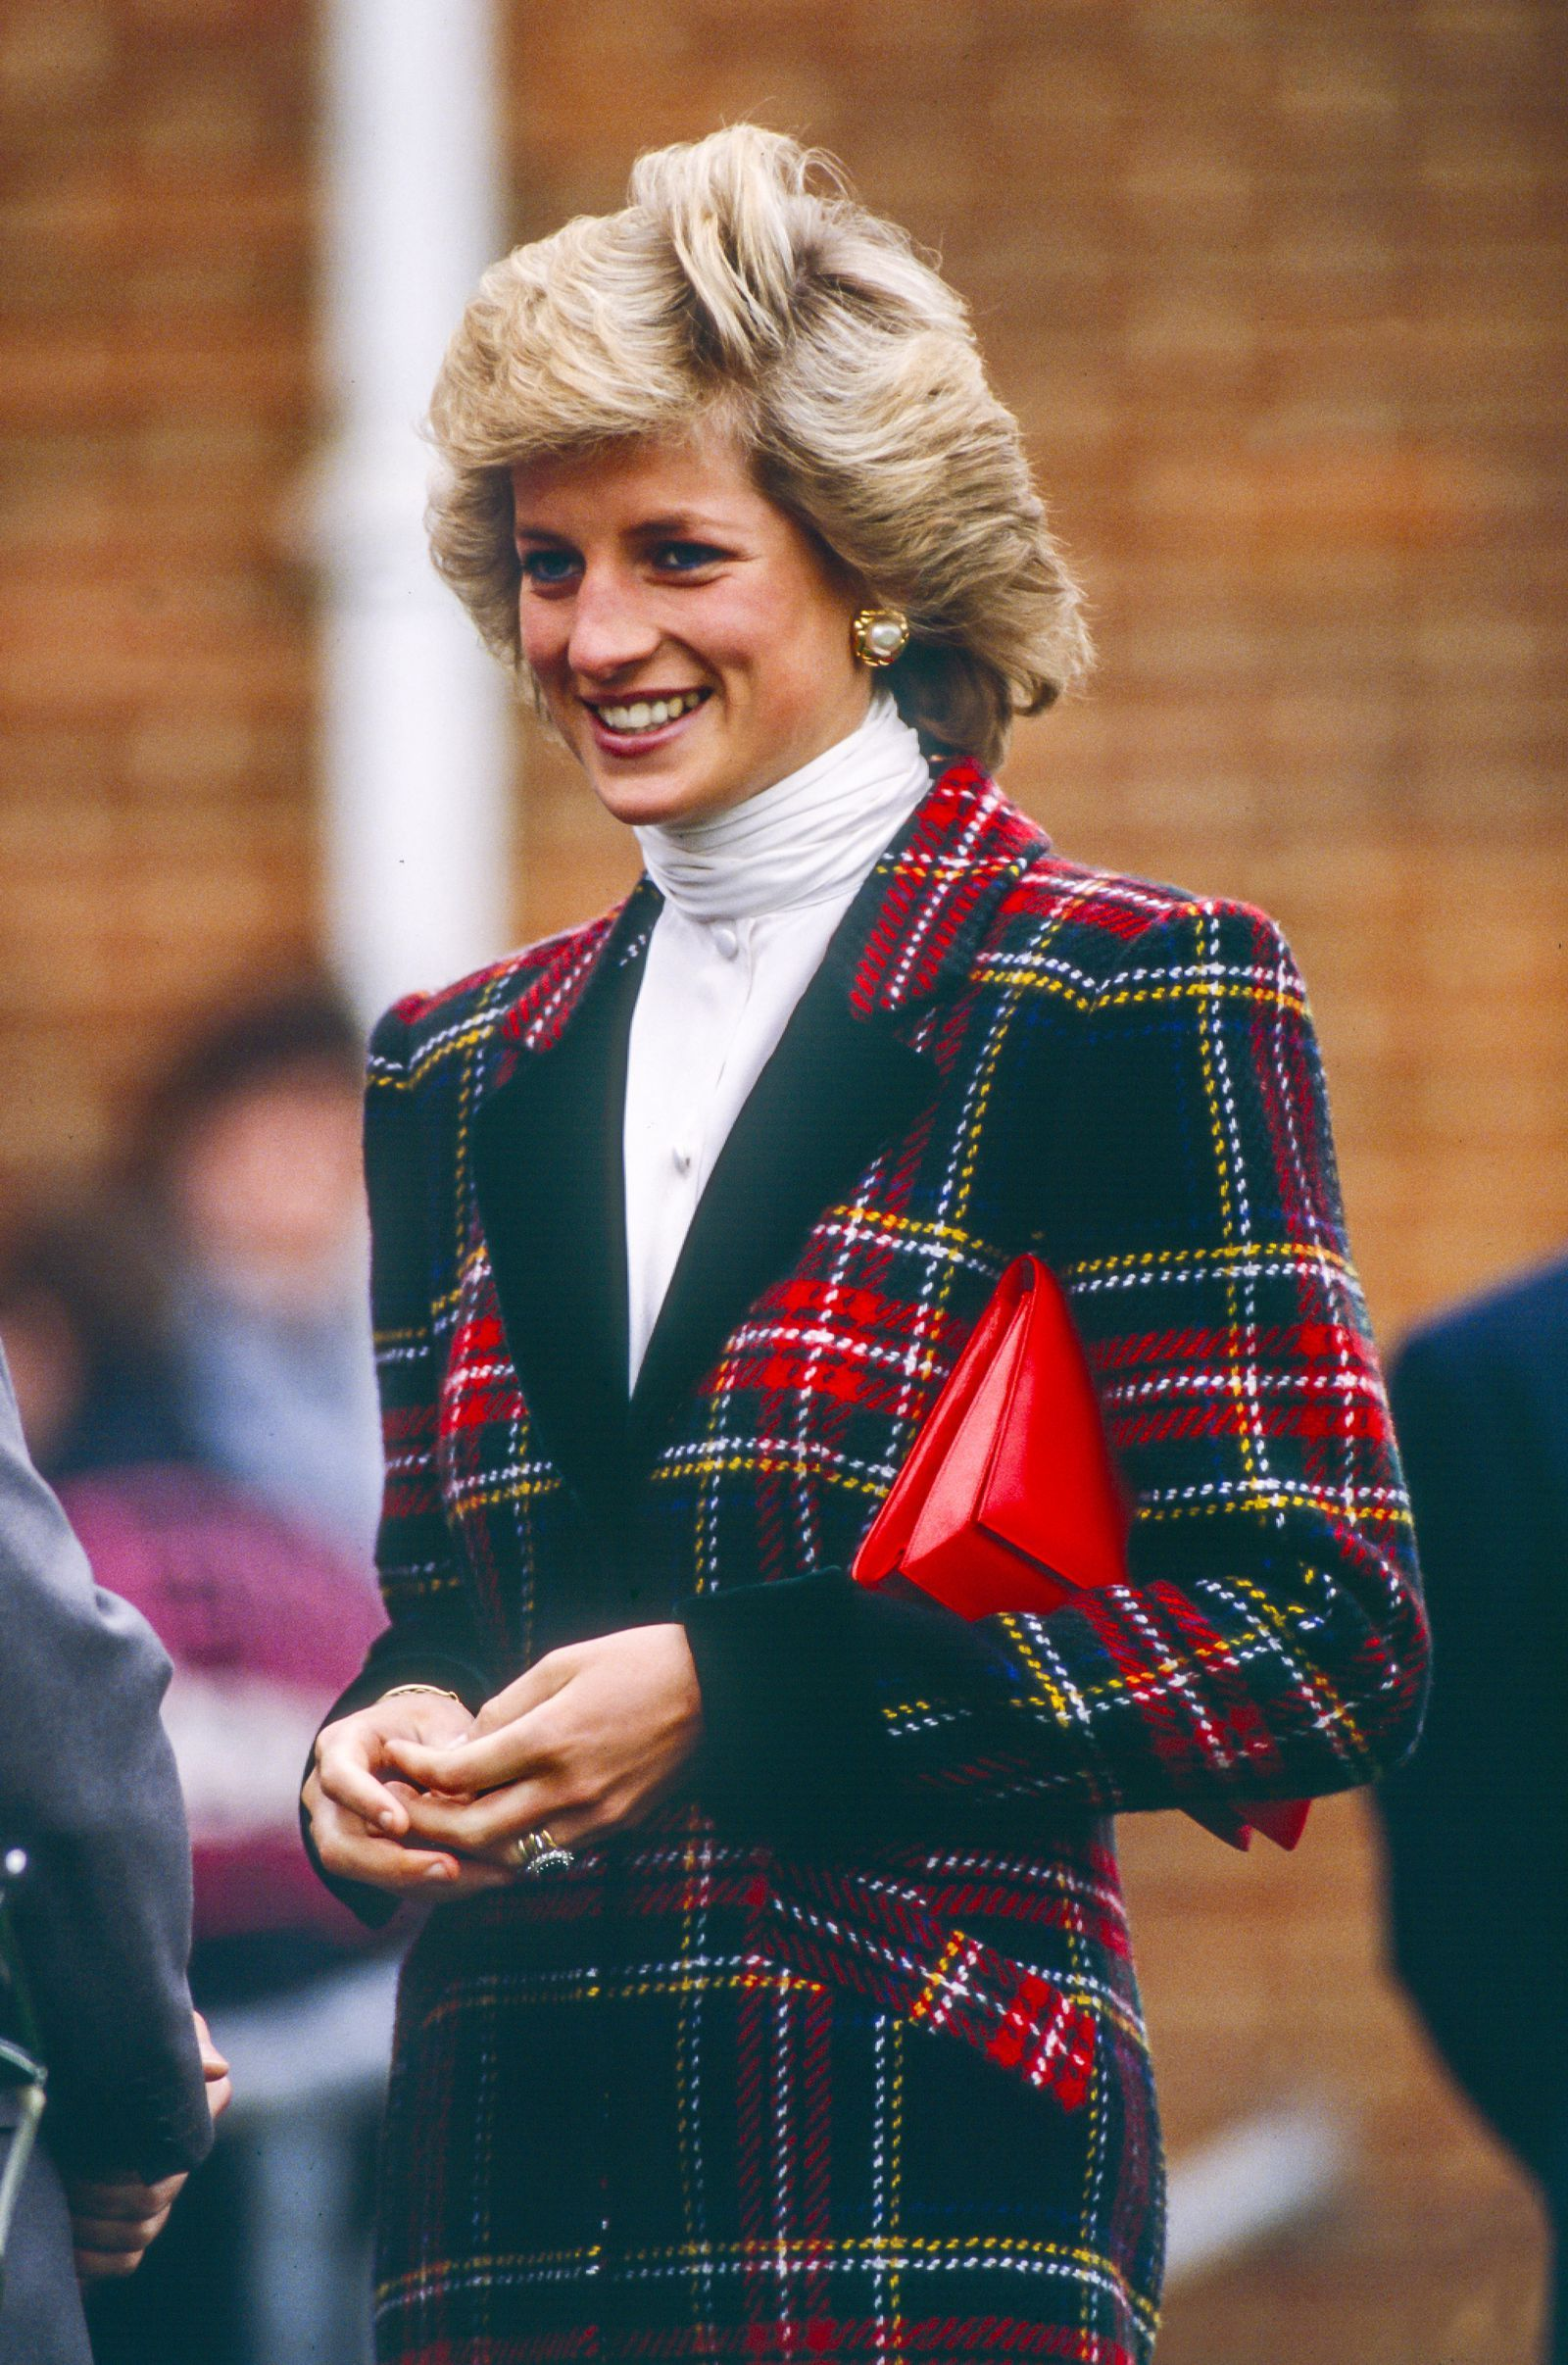 Princess Charlotte Is the Latest Royal to Kill It in Plaid #princessdiana